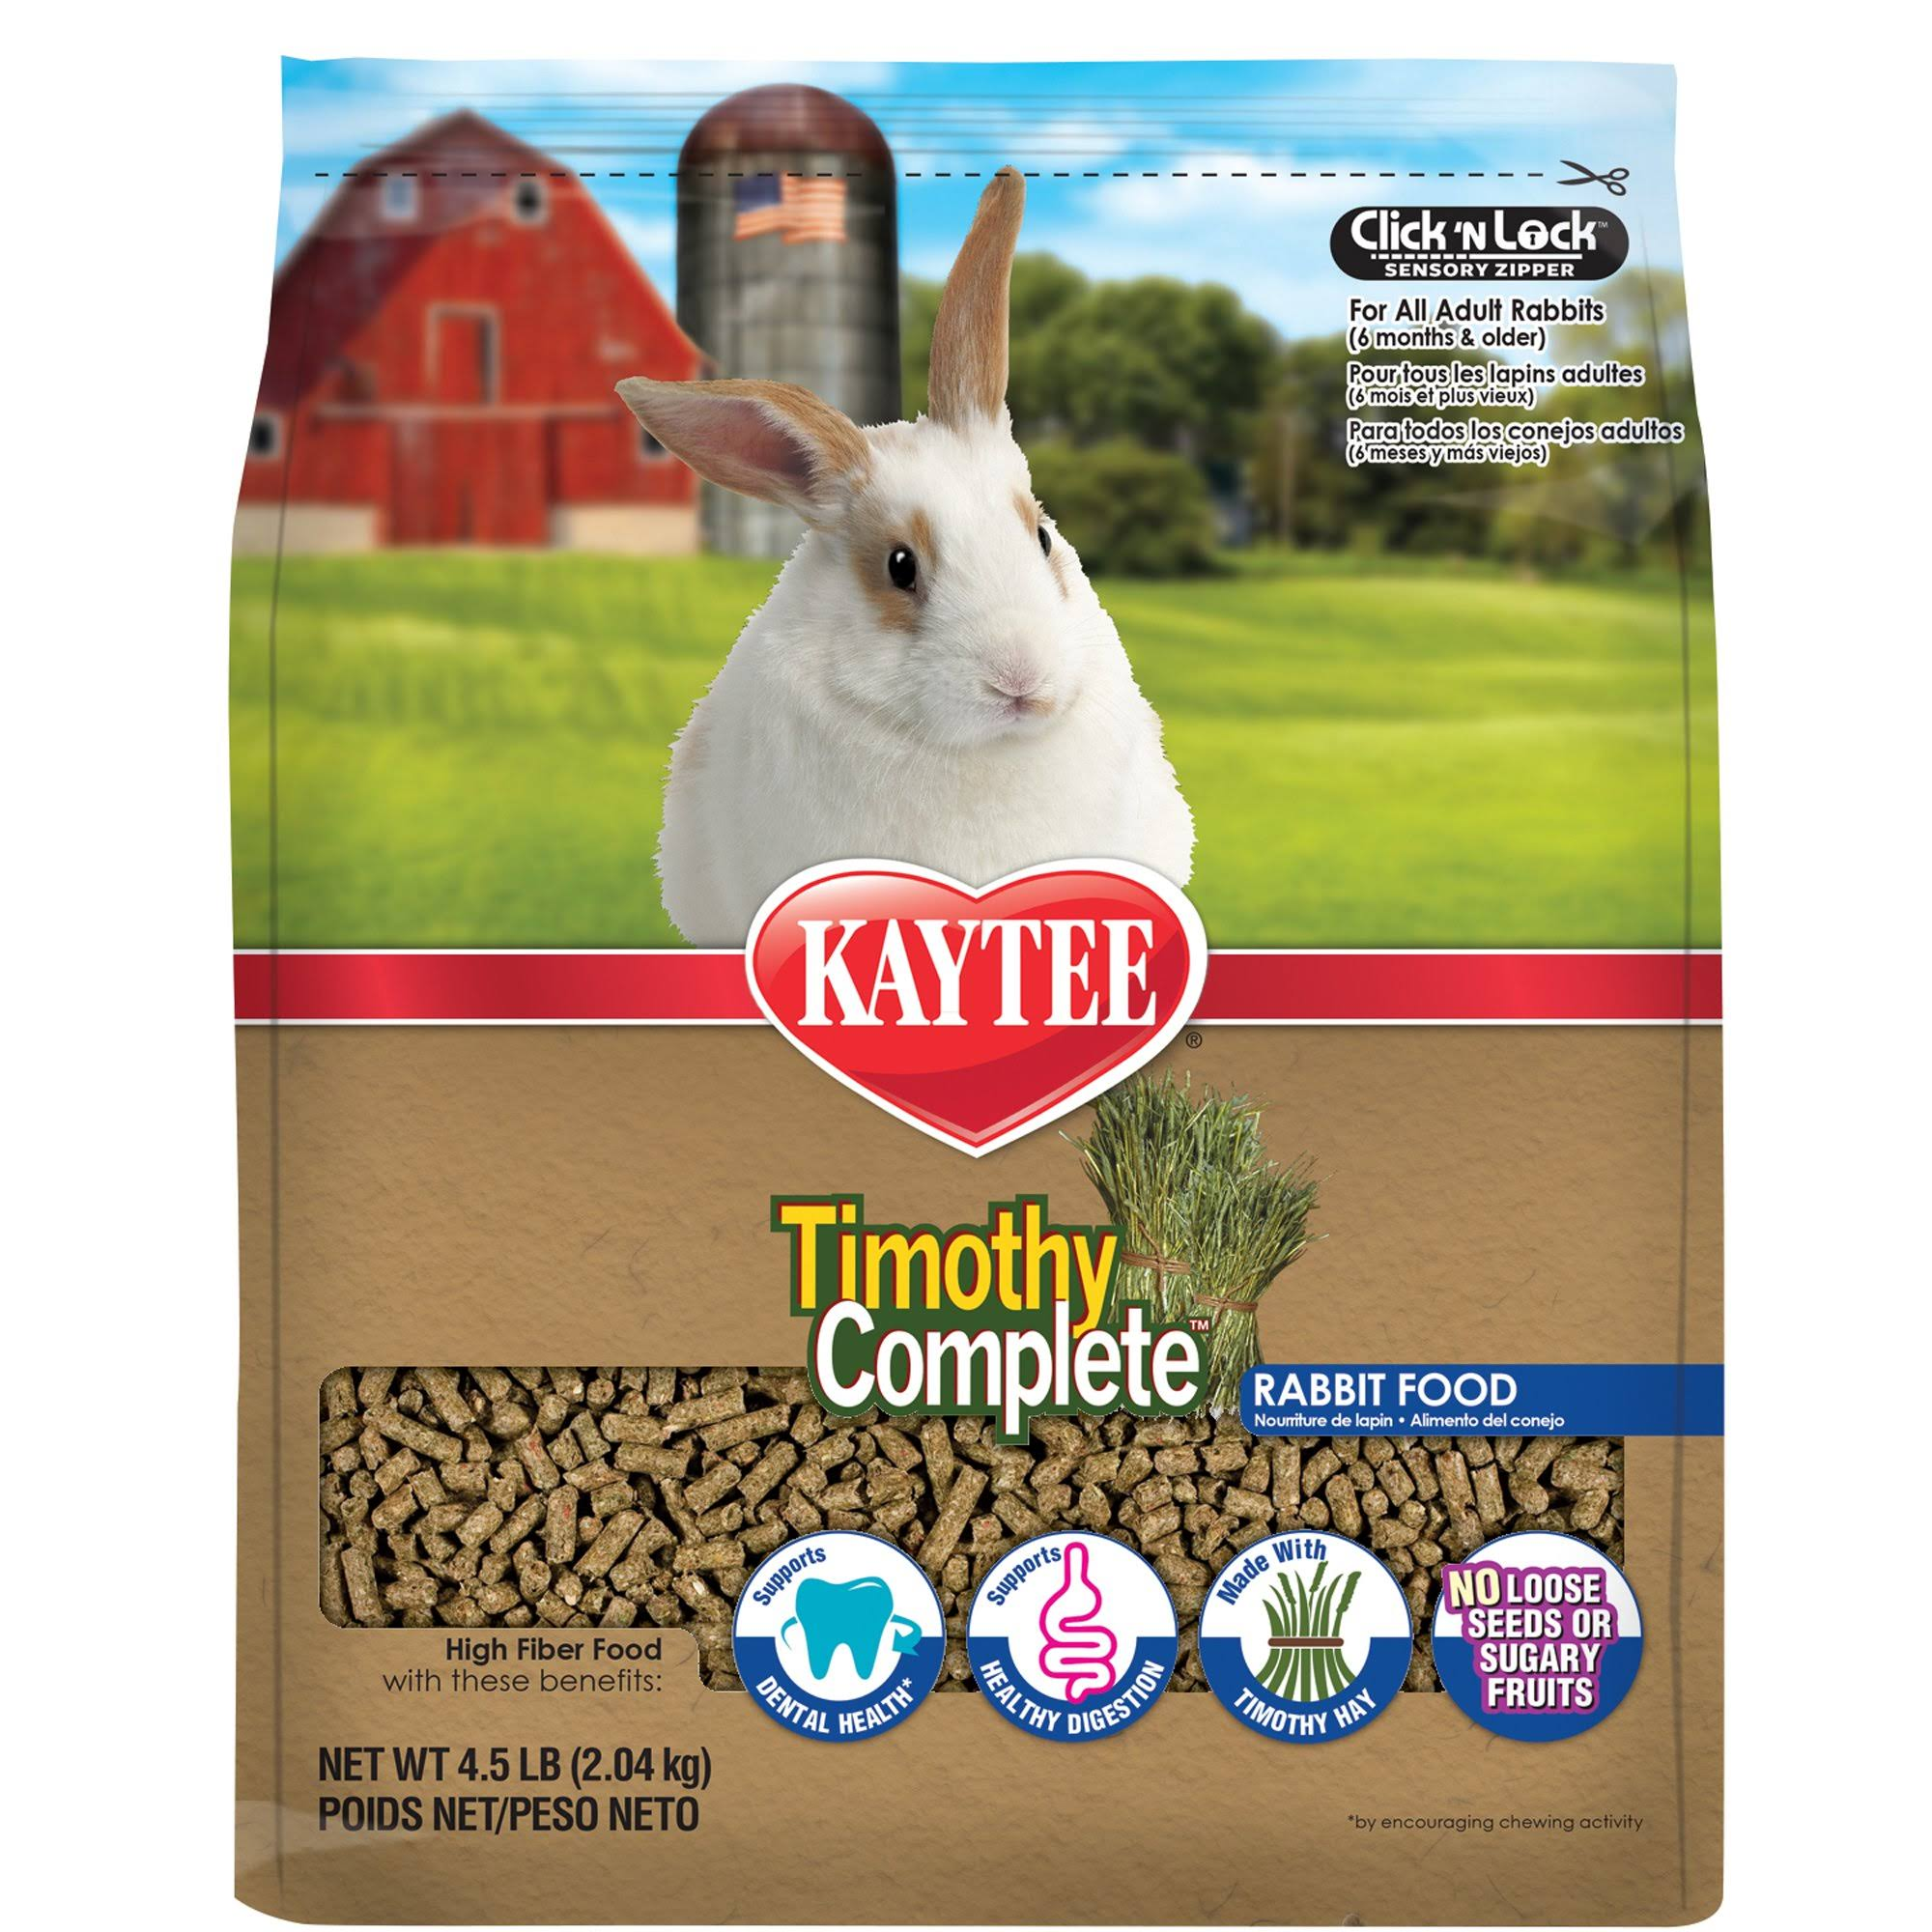 Kaytee Products Timothy Complete Rabbit Food - 9.5lbs